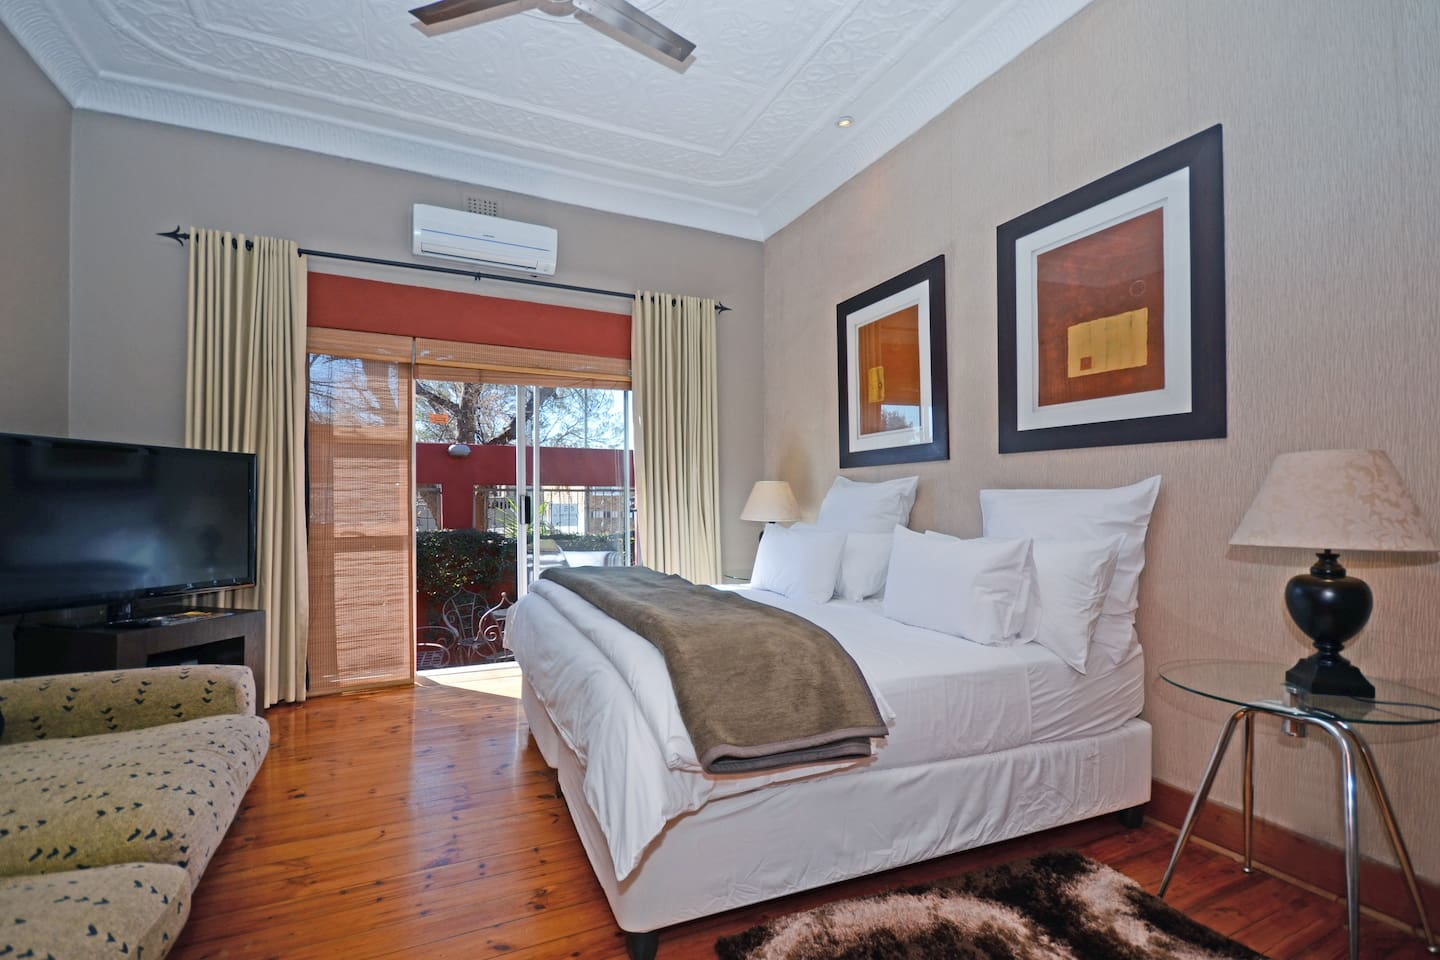 Suite one offers private patio area, kitchenette, en suite bathroom and can accomodate 3 people.